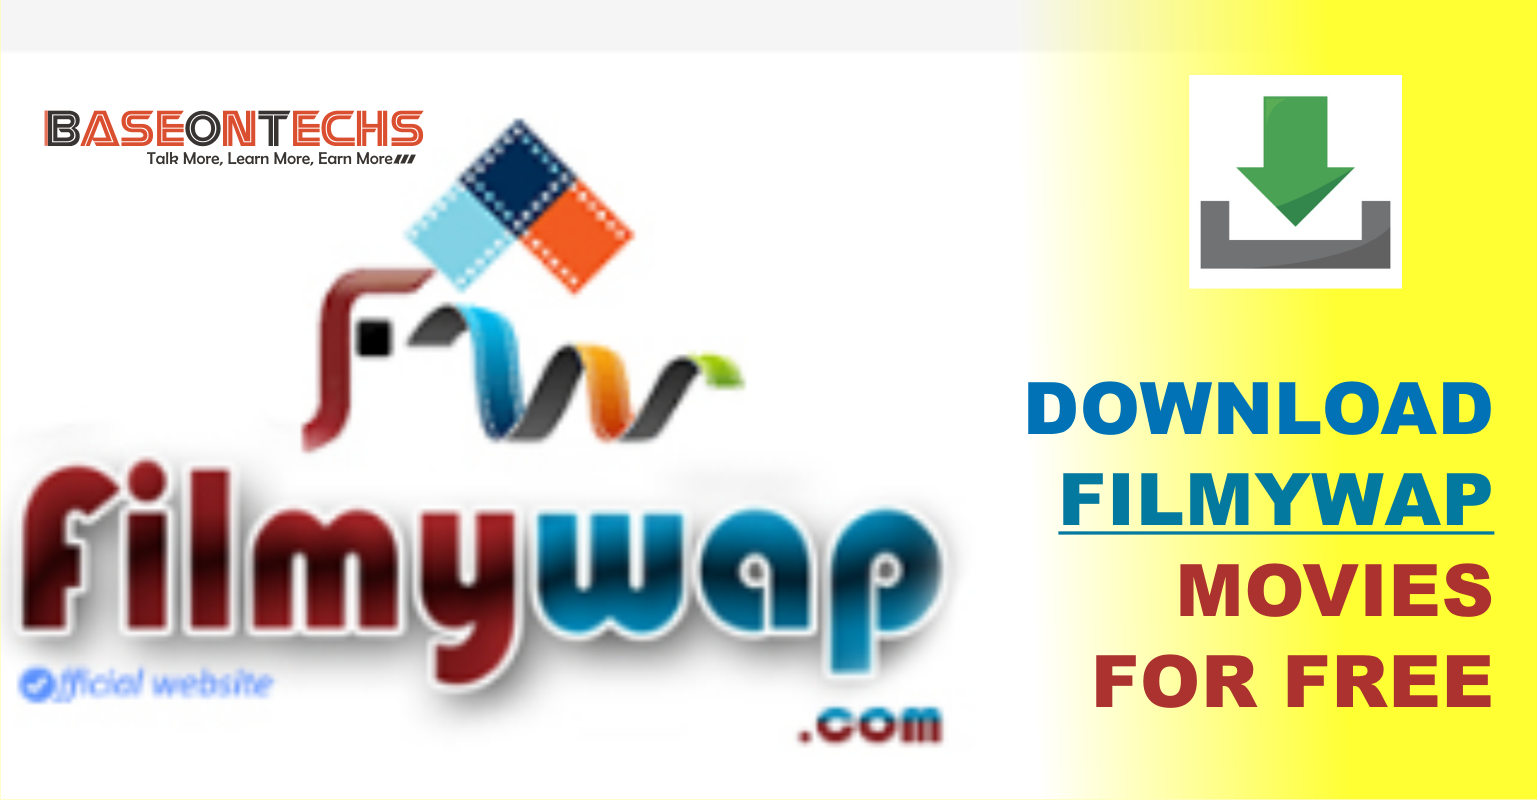 telugu wap net 2019 movies download free